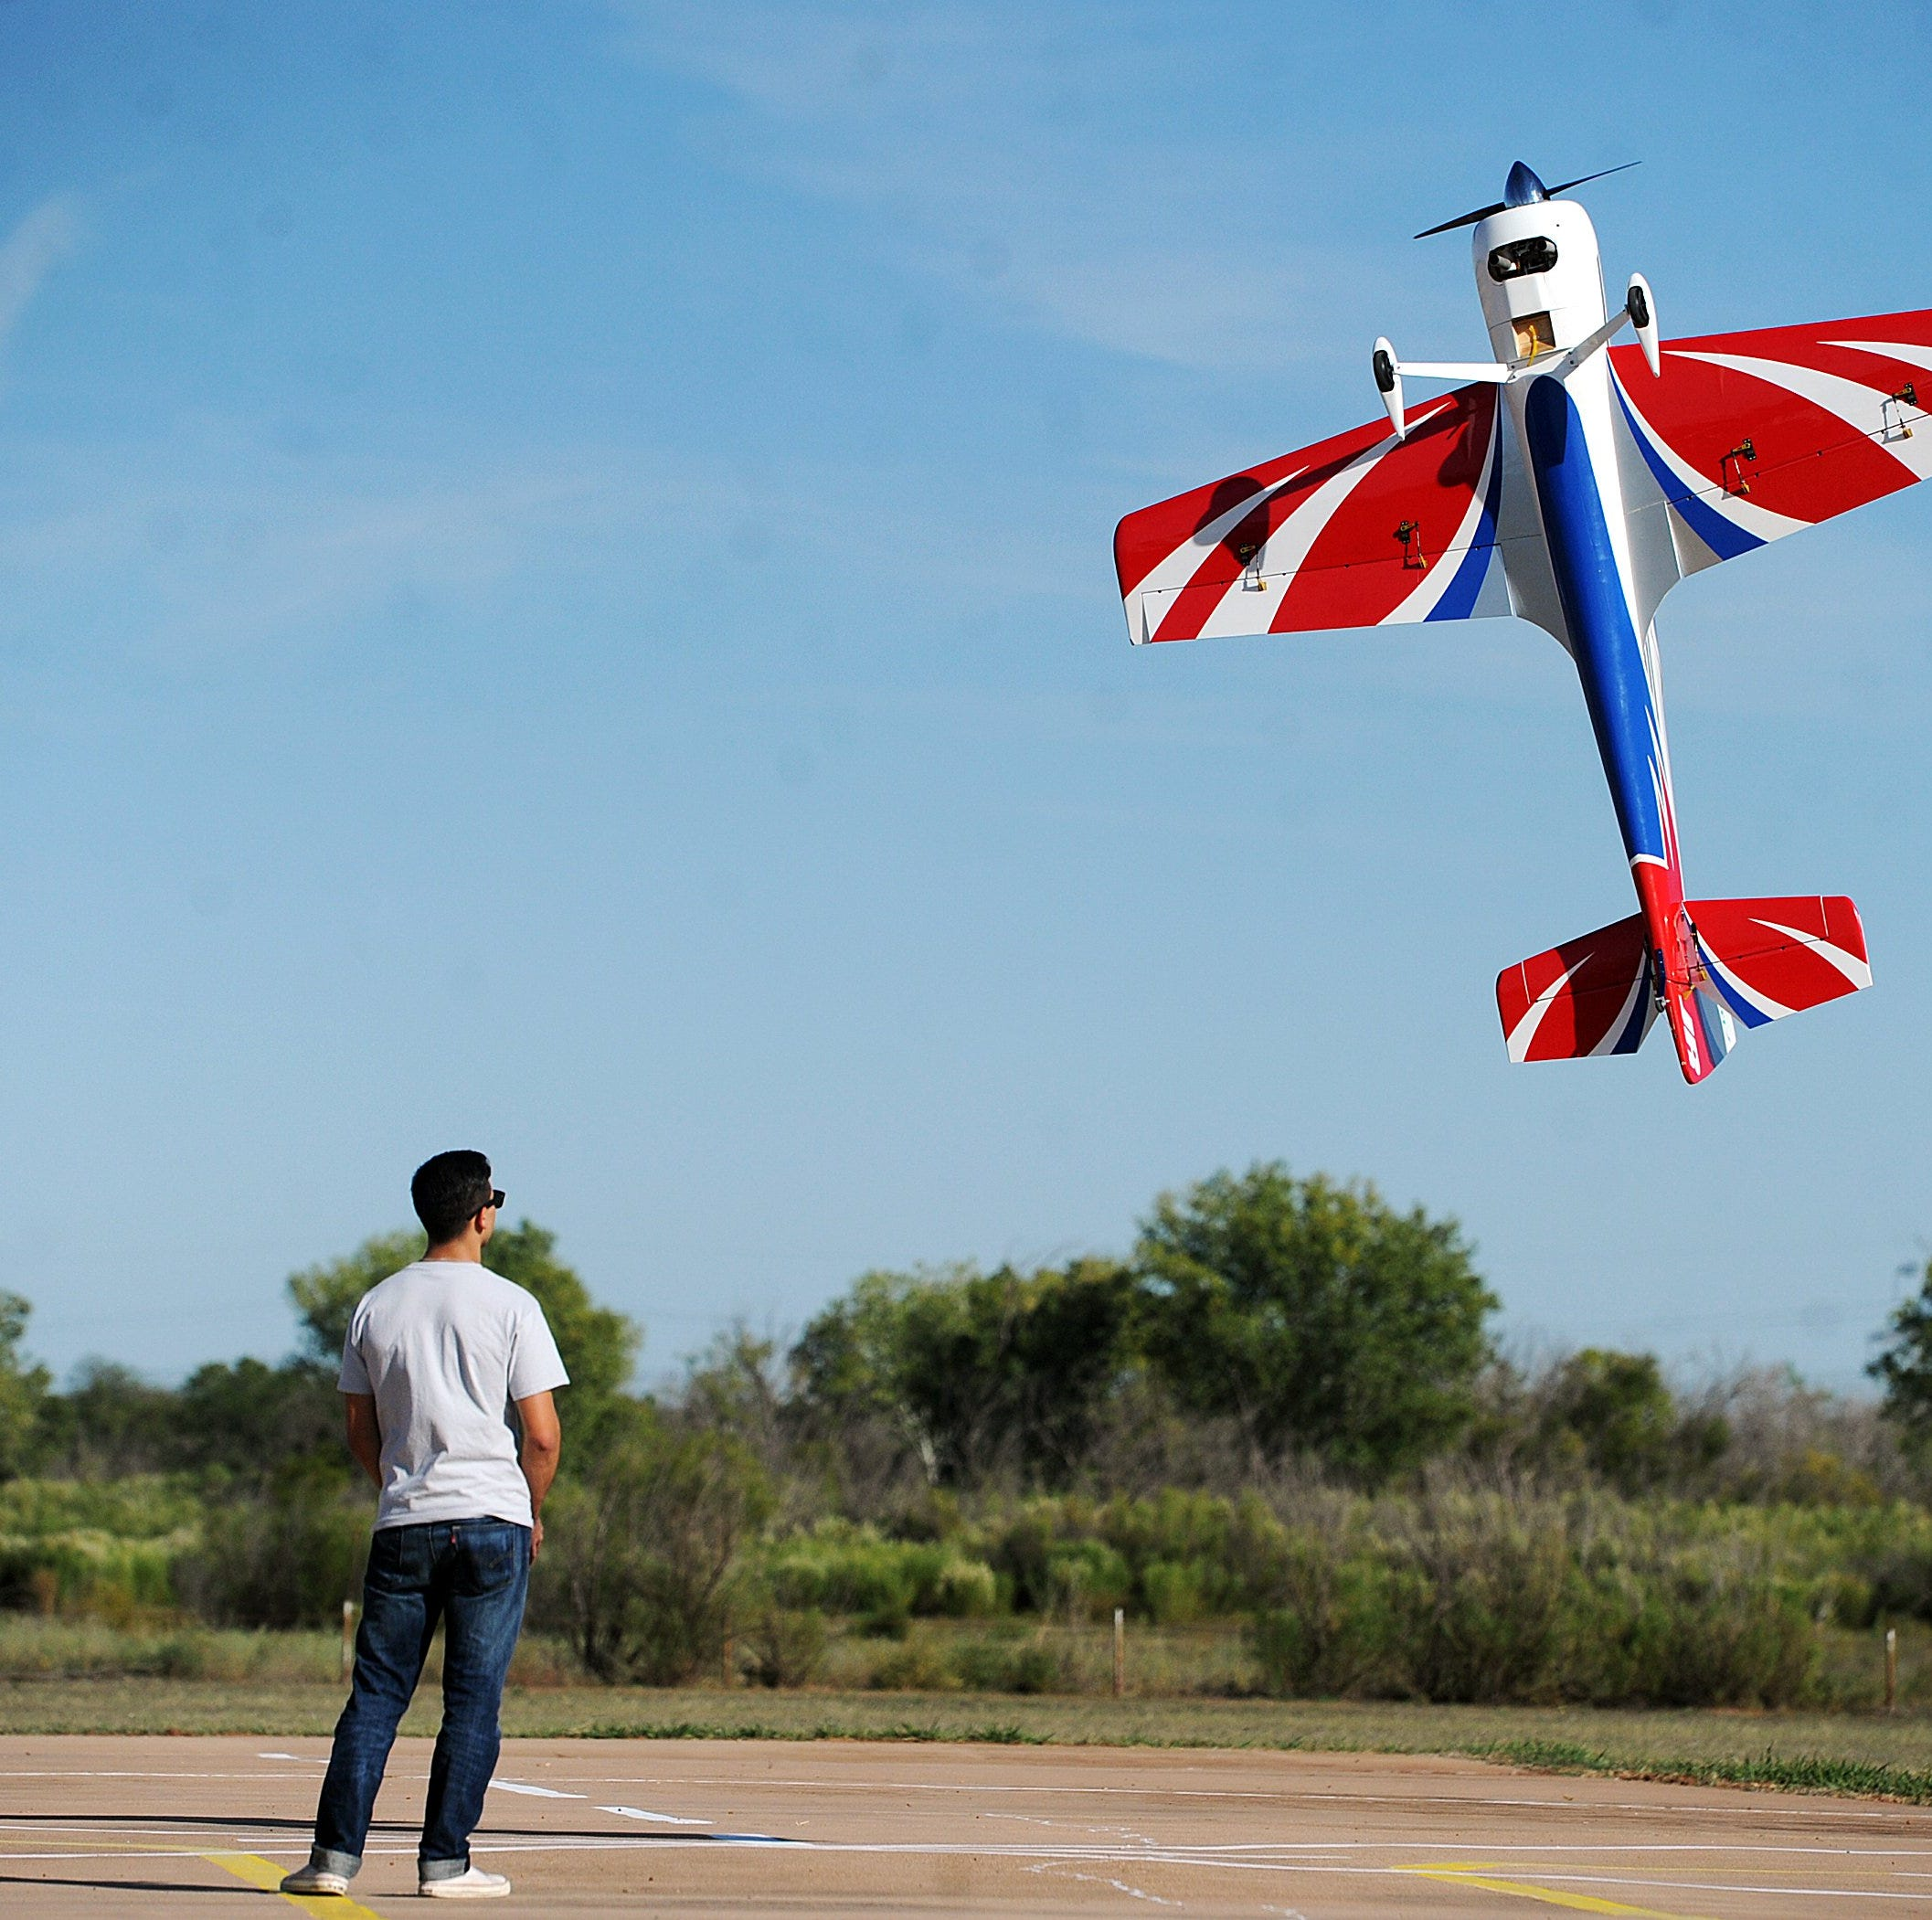 Radio-controlled replicas take flight above Abilene